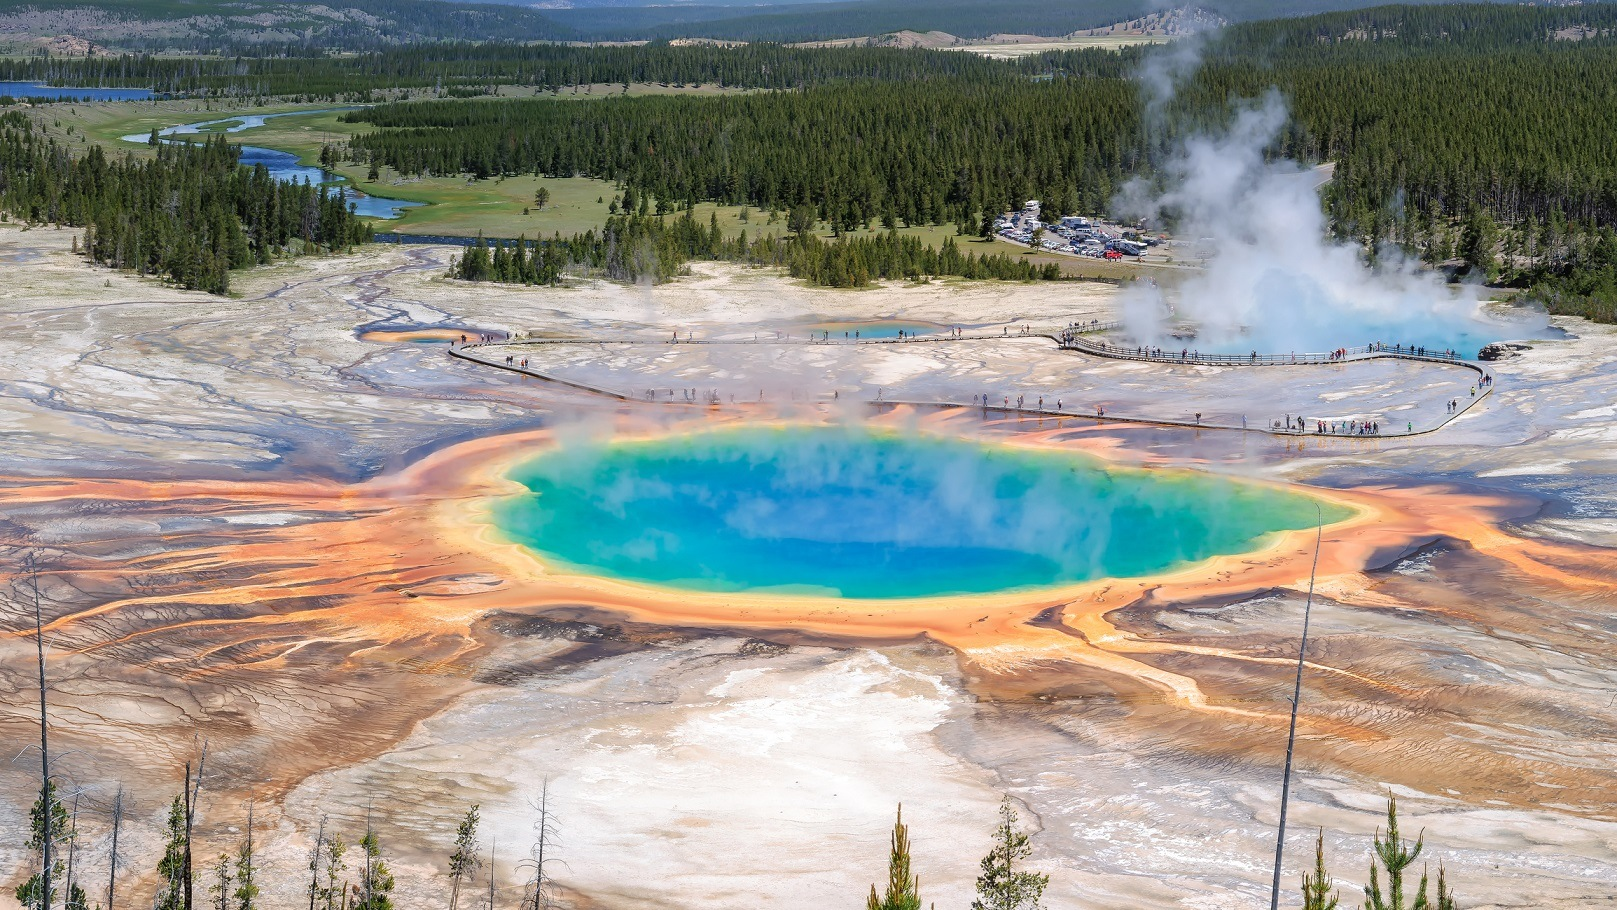 Yellowstone and 9 Other Active Volcanoes That Could Erupt